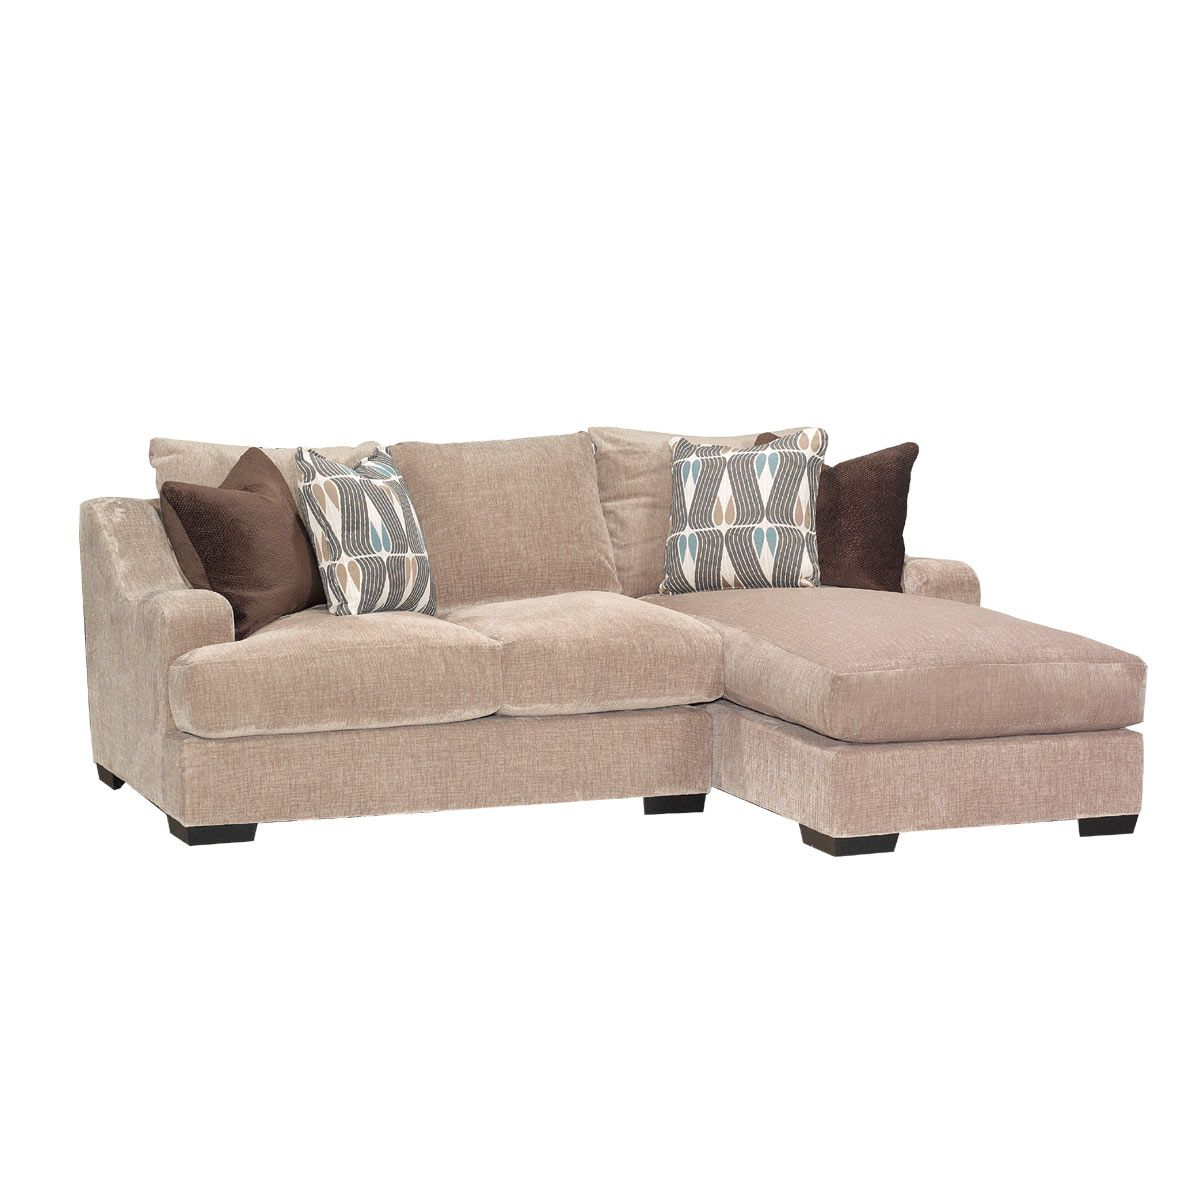 2Pc Maddox Right Arm Facing Sectional Sofas With Chaise Brown With Regard To Most Current Stone Brown Casual Contemporary 2 Piece Sectional (View 10 of 25)